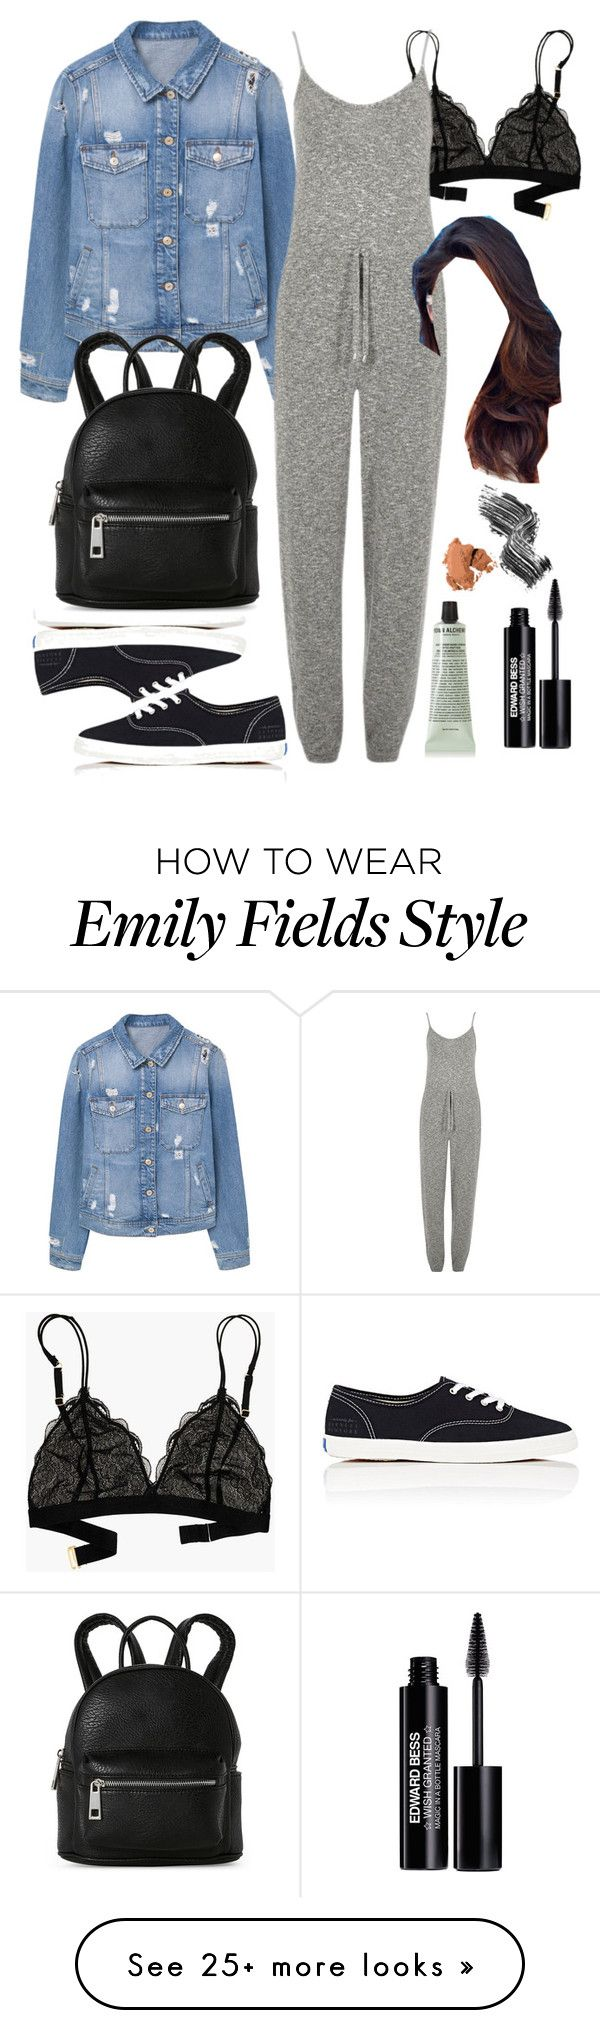 """Emily Fields inspired college outfit"" by liarsstyle on Polyvore featuring MANGO, Madewell, River Island, Keds, Street Level, Grown Alchemist, Edward Bess, Illamasqua, Bobbi Brown Cosmetics and casual"